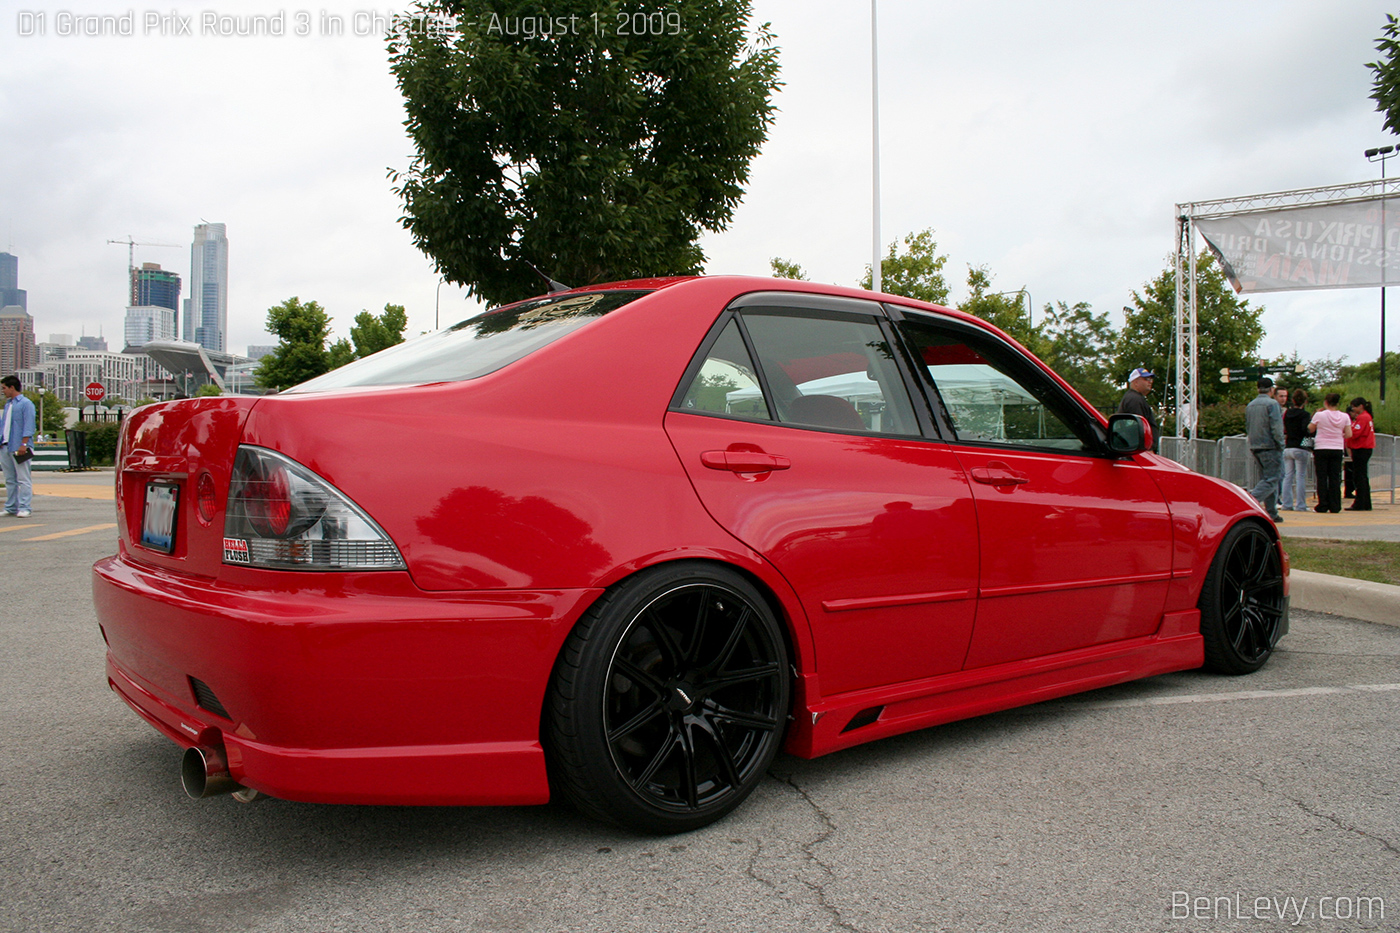 Slammed Red Lexus Is300 Benlevy Com